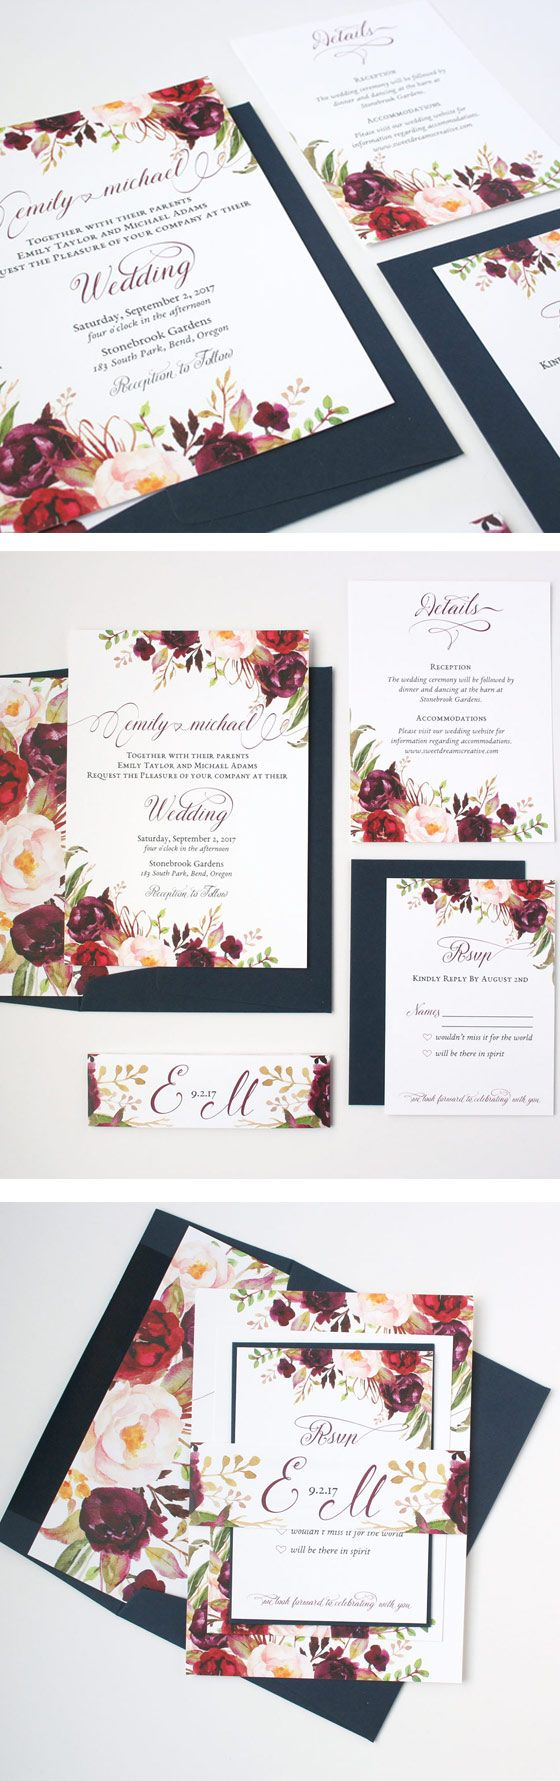 17 best ideas about bohemian wedding invitations on pinterest, Wedding invitations